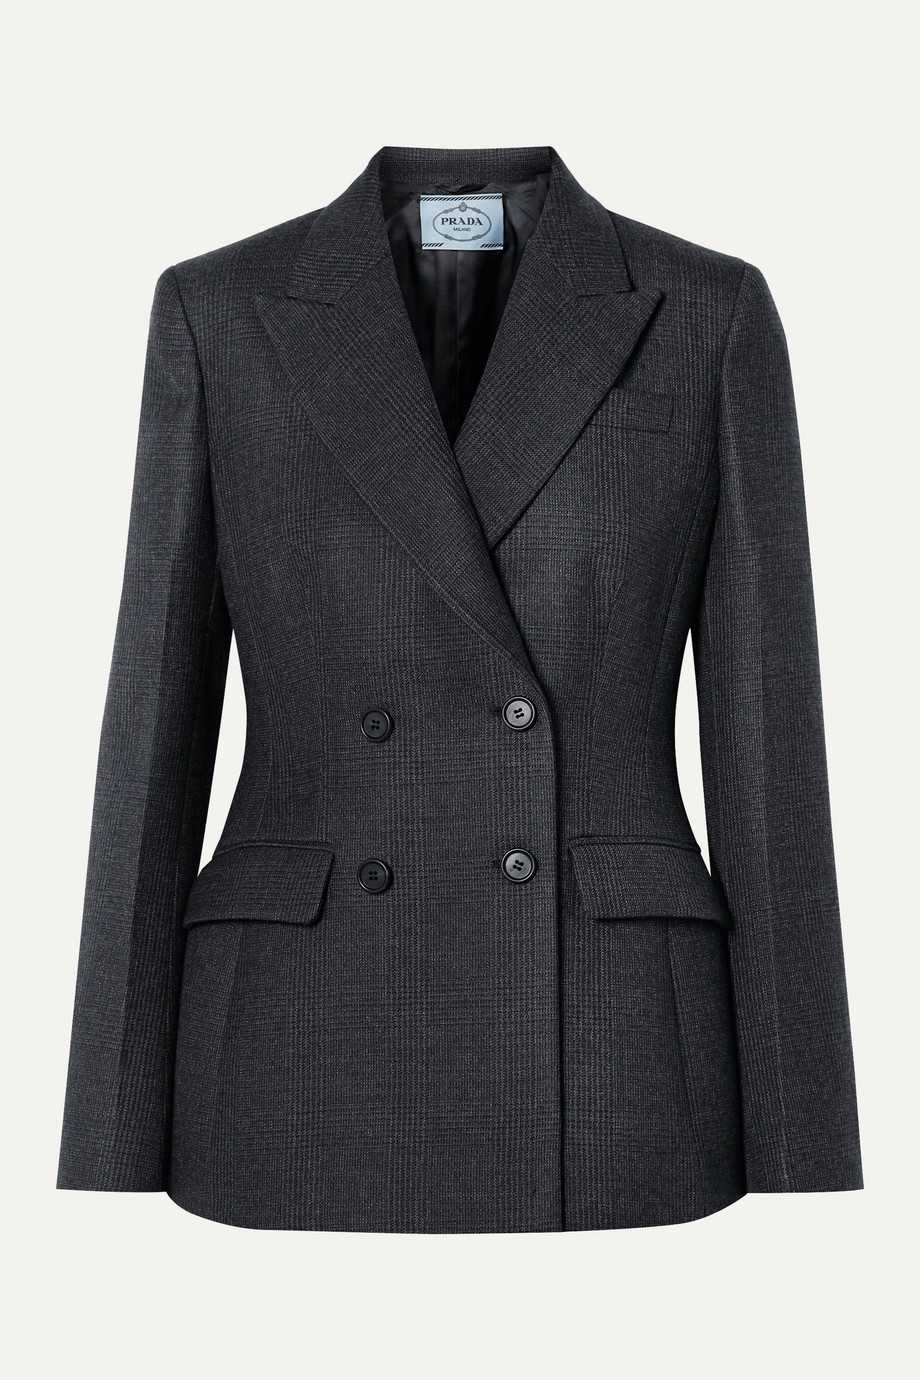 Prada Double-breasted checked wool-blend blazer